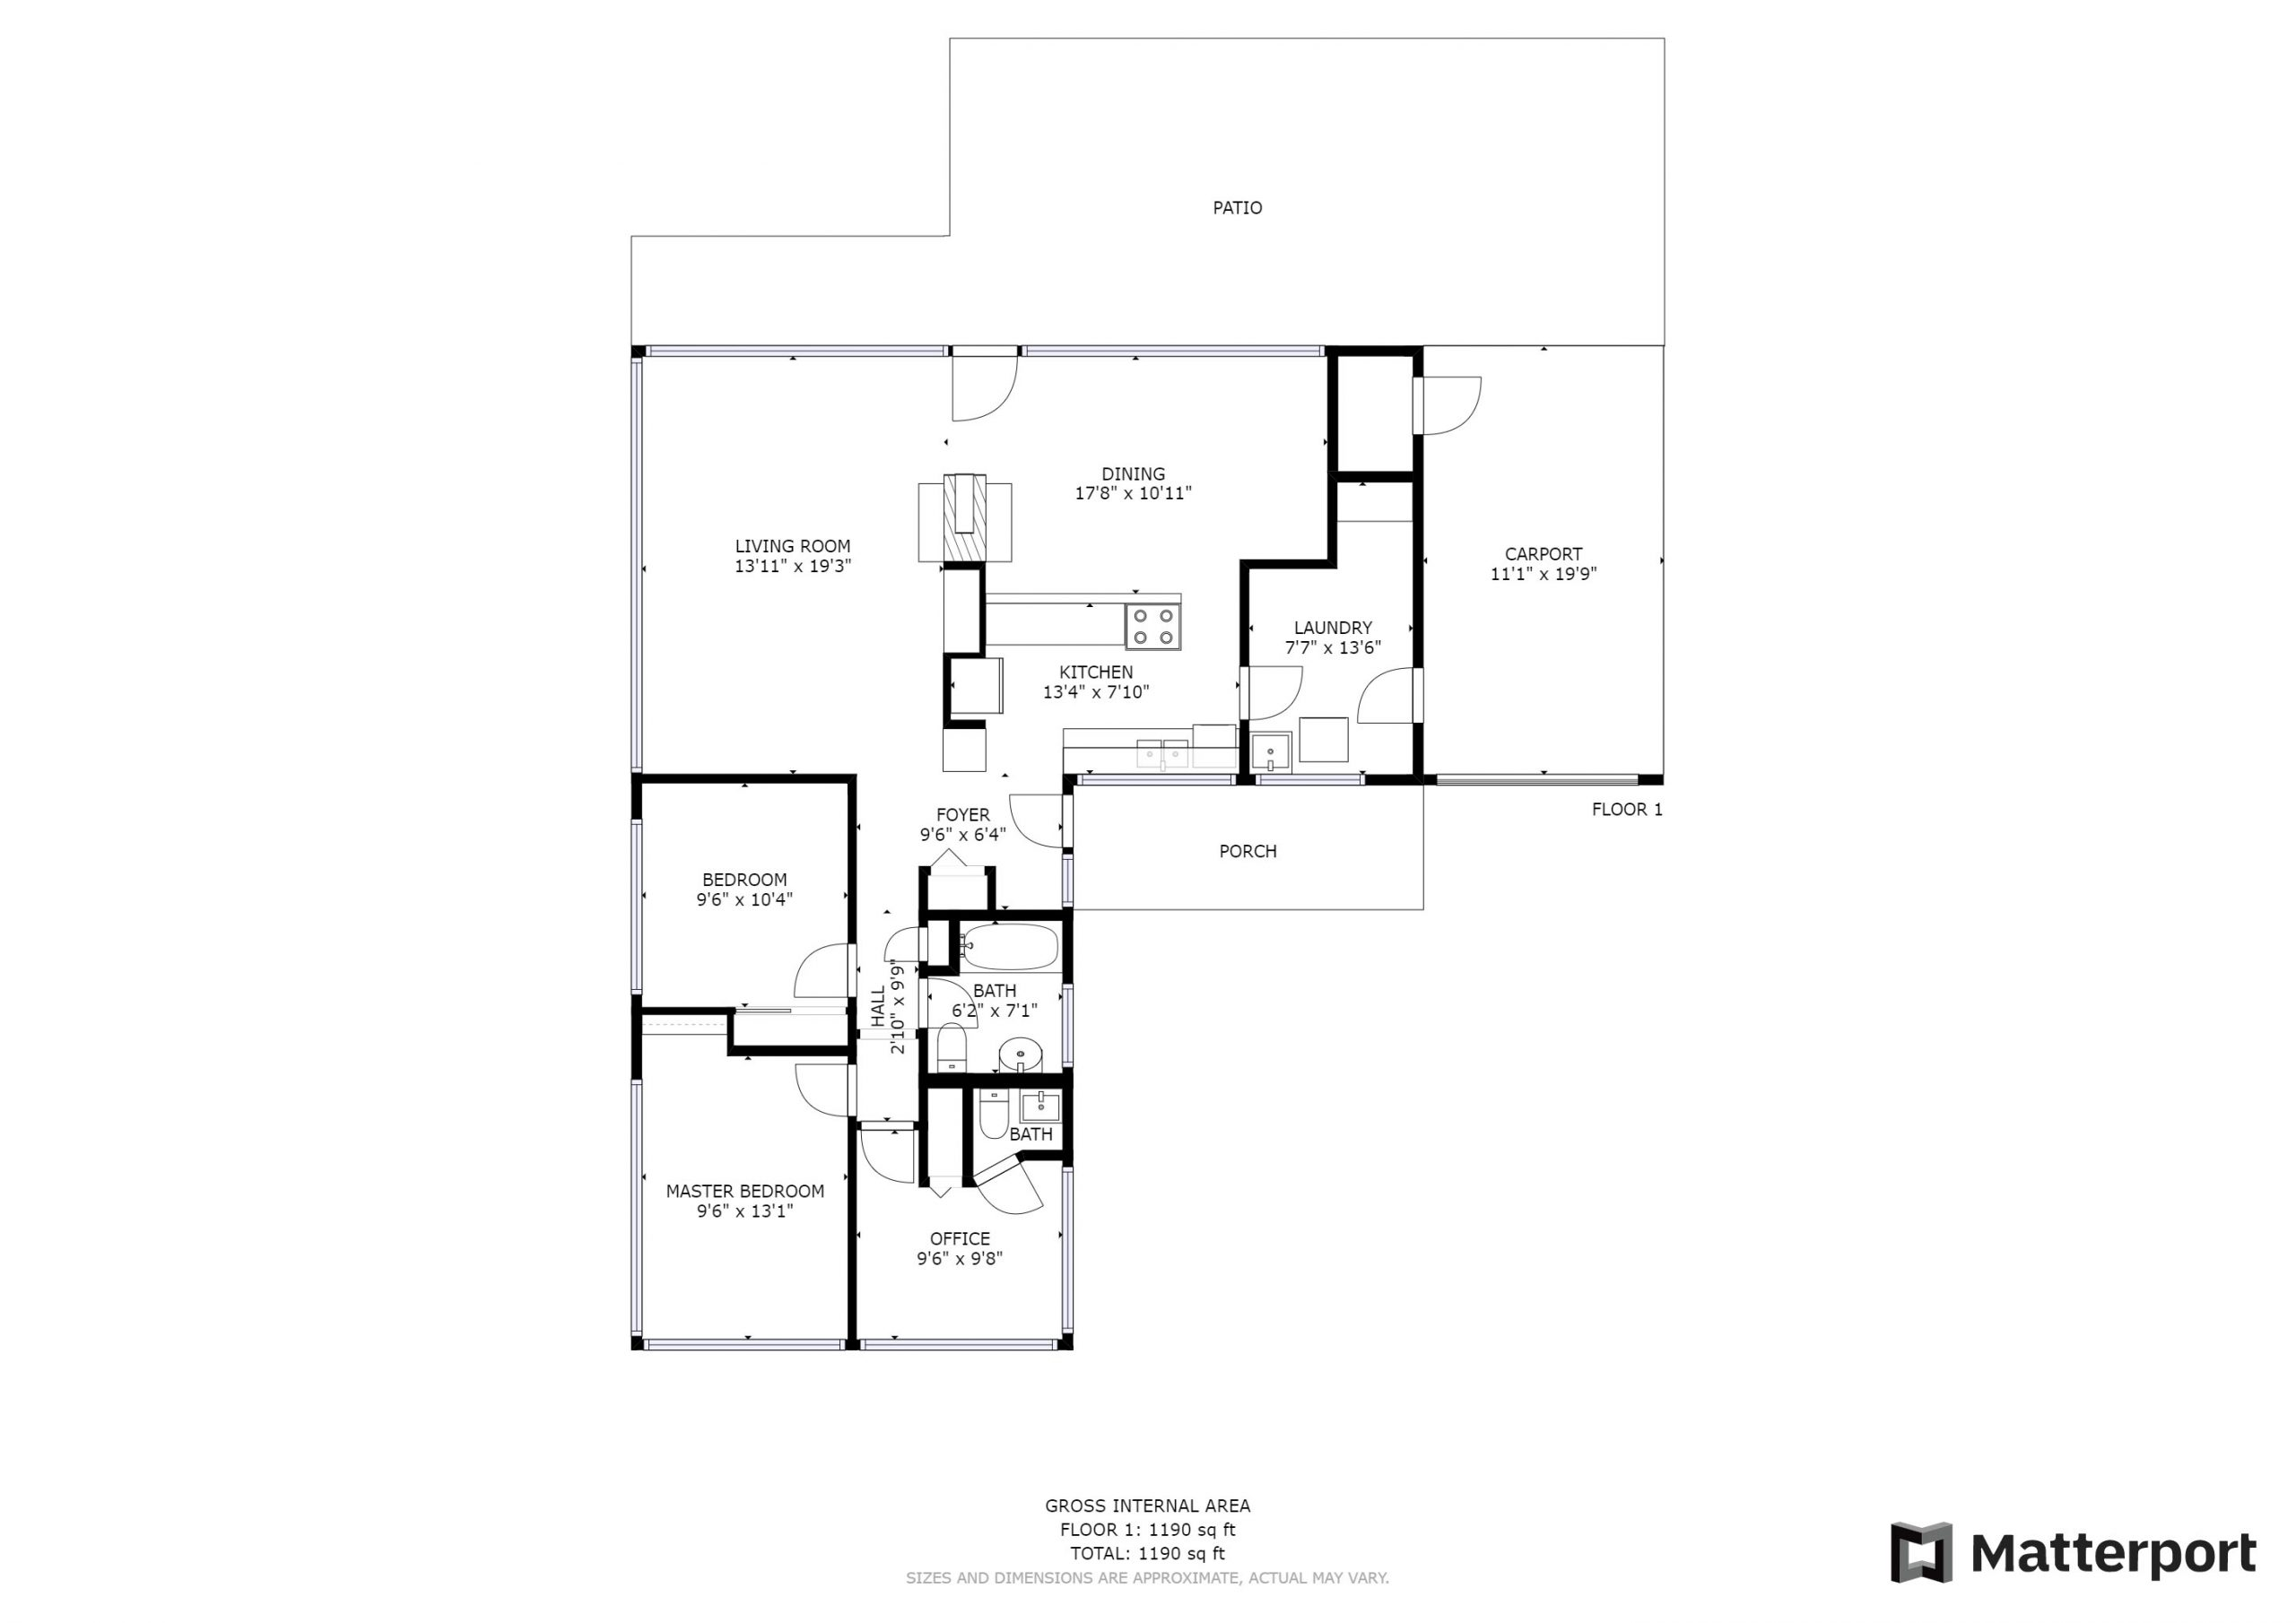 Floorplan & Approximate Room Measurements_Matterport